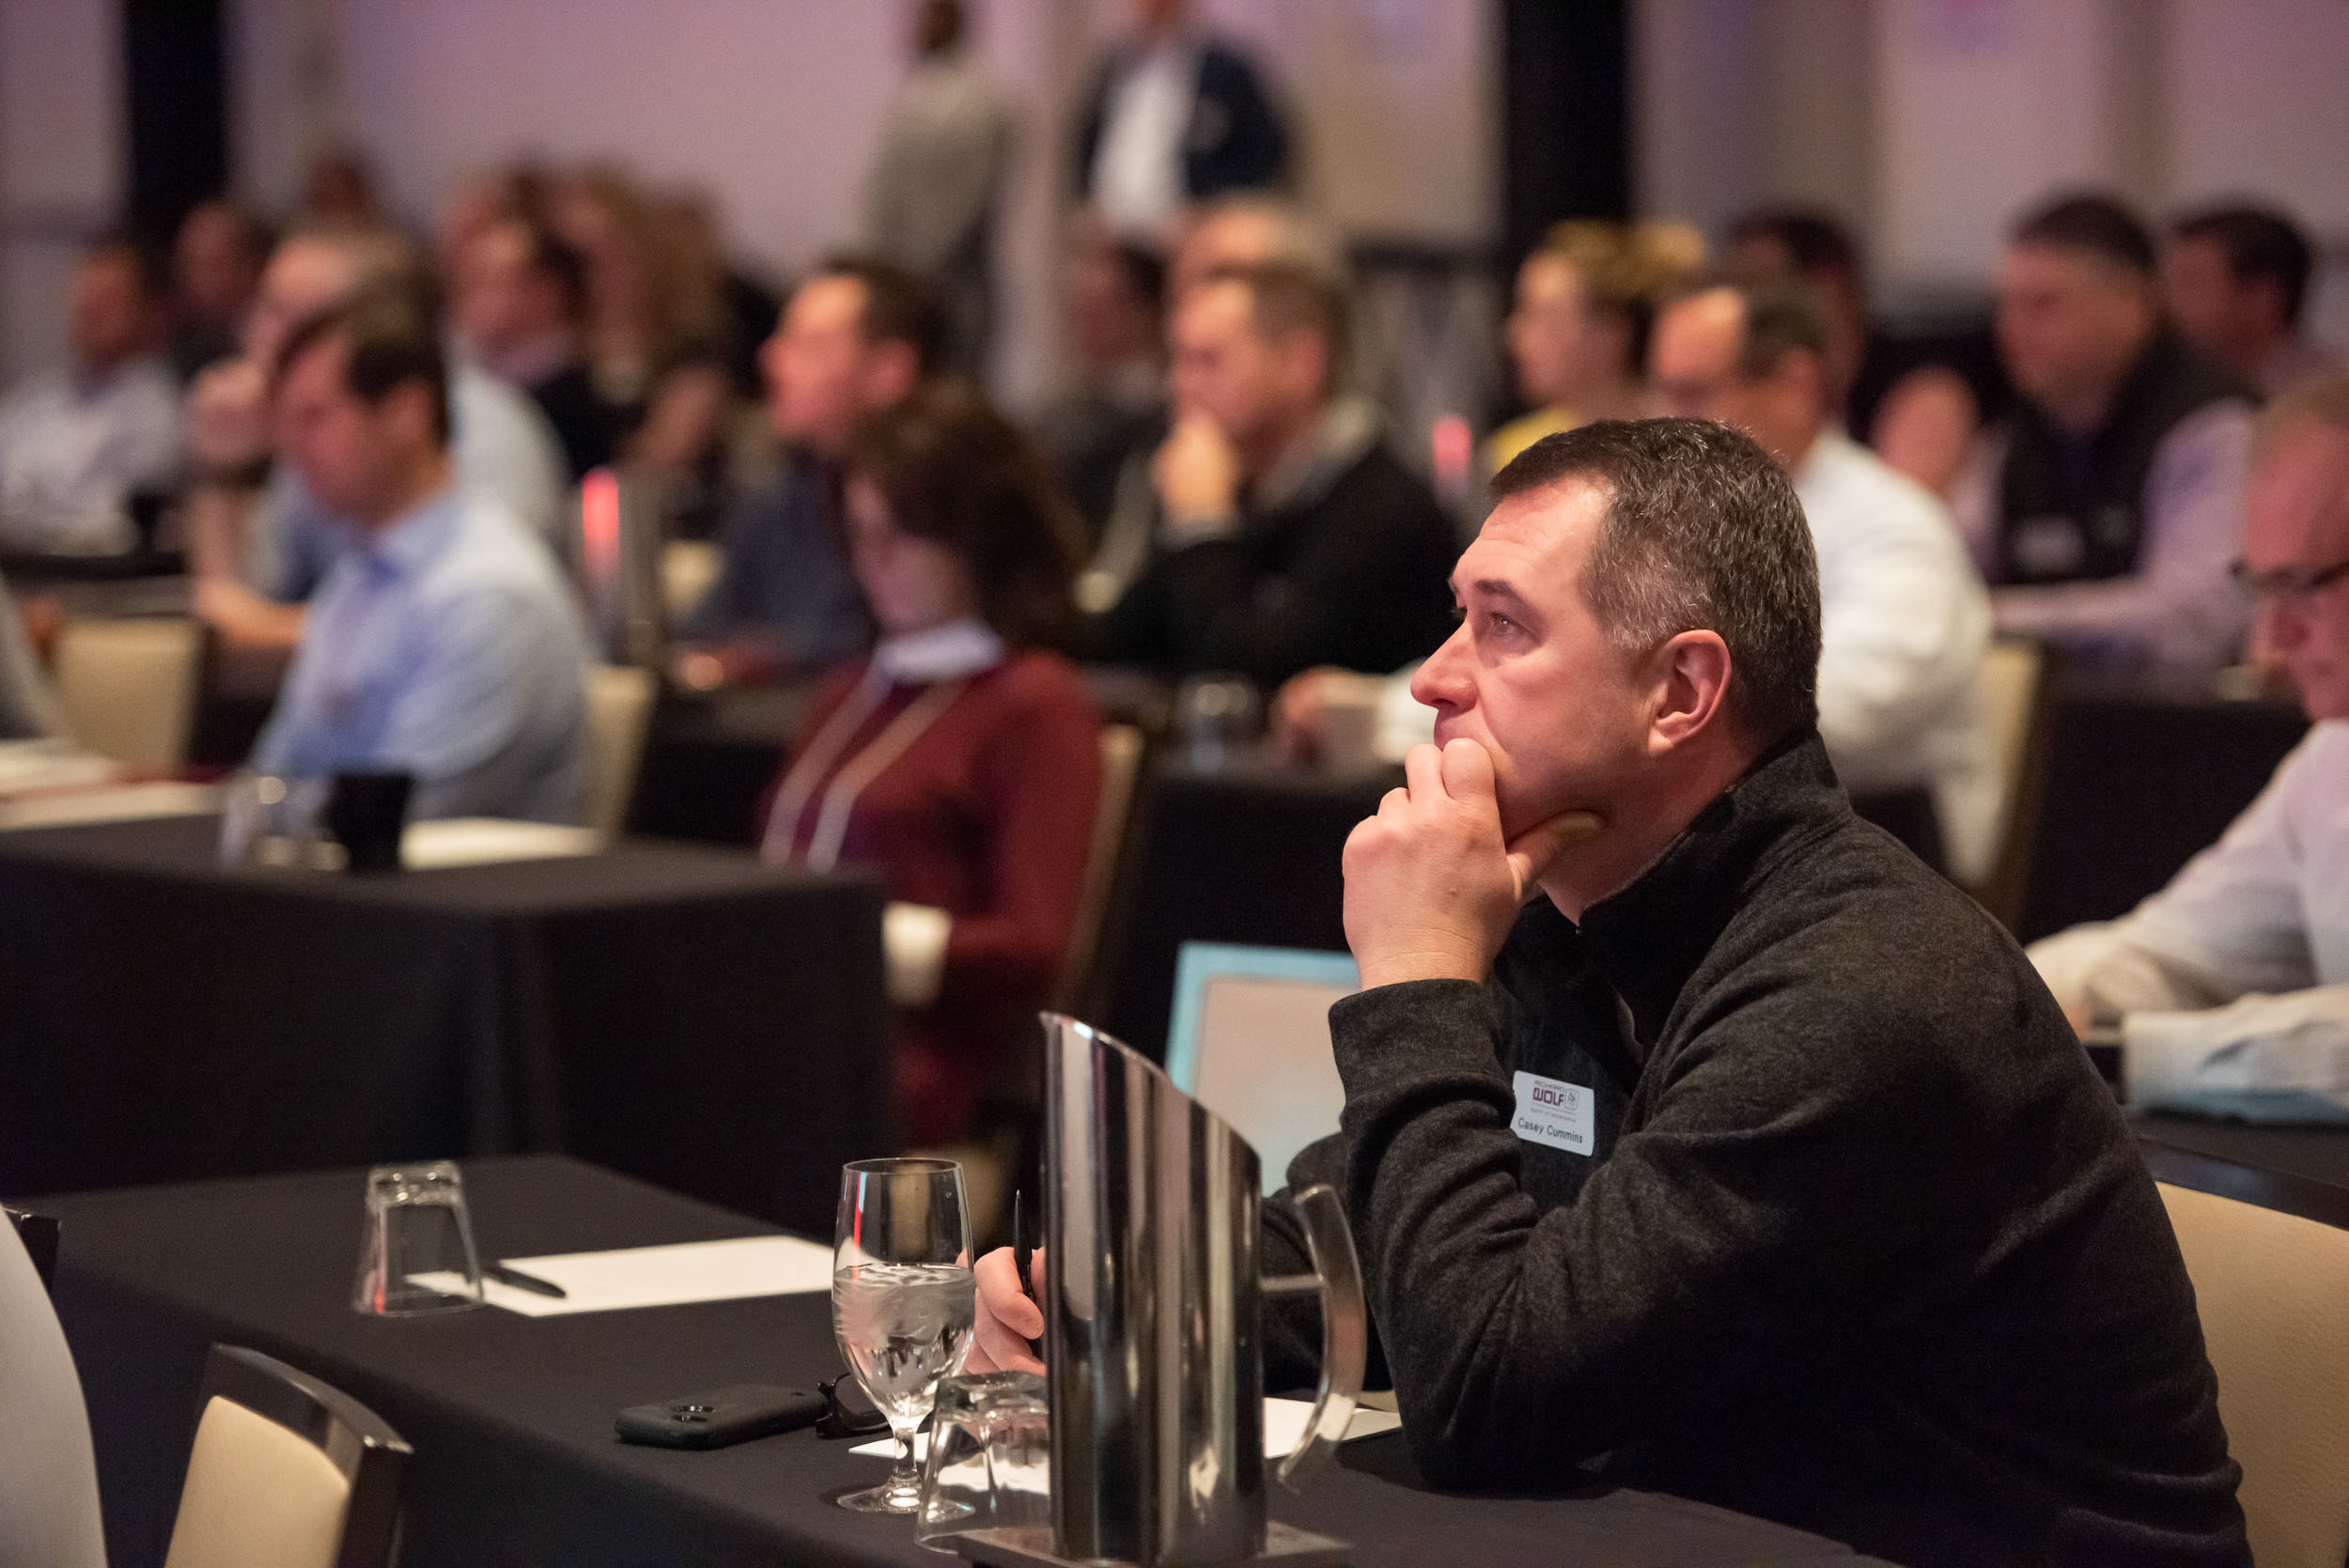 2019 National Sales and Marketing Meeting - mark campbell photography-276_Resized_Resized.jpg